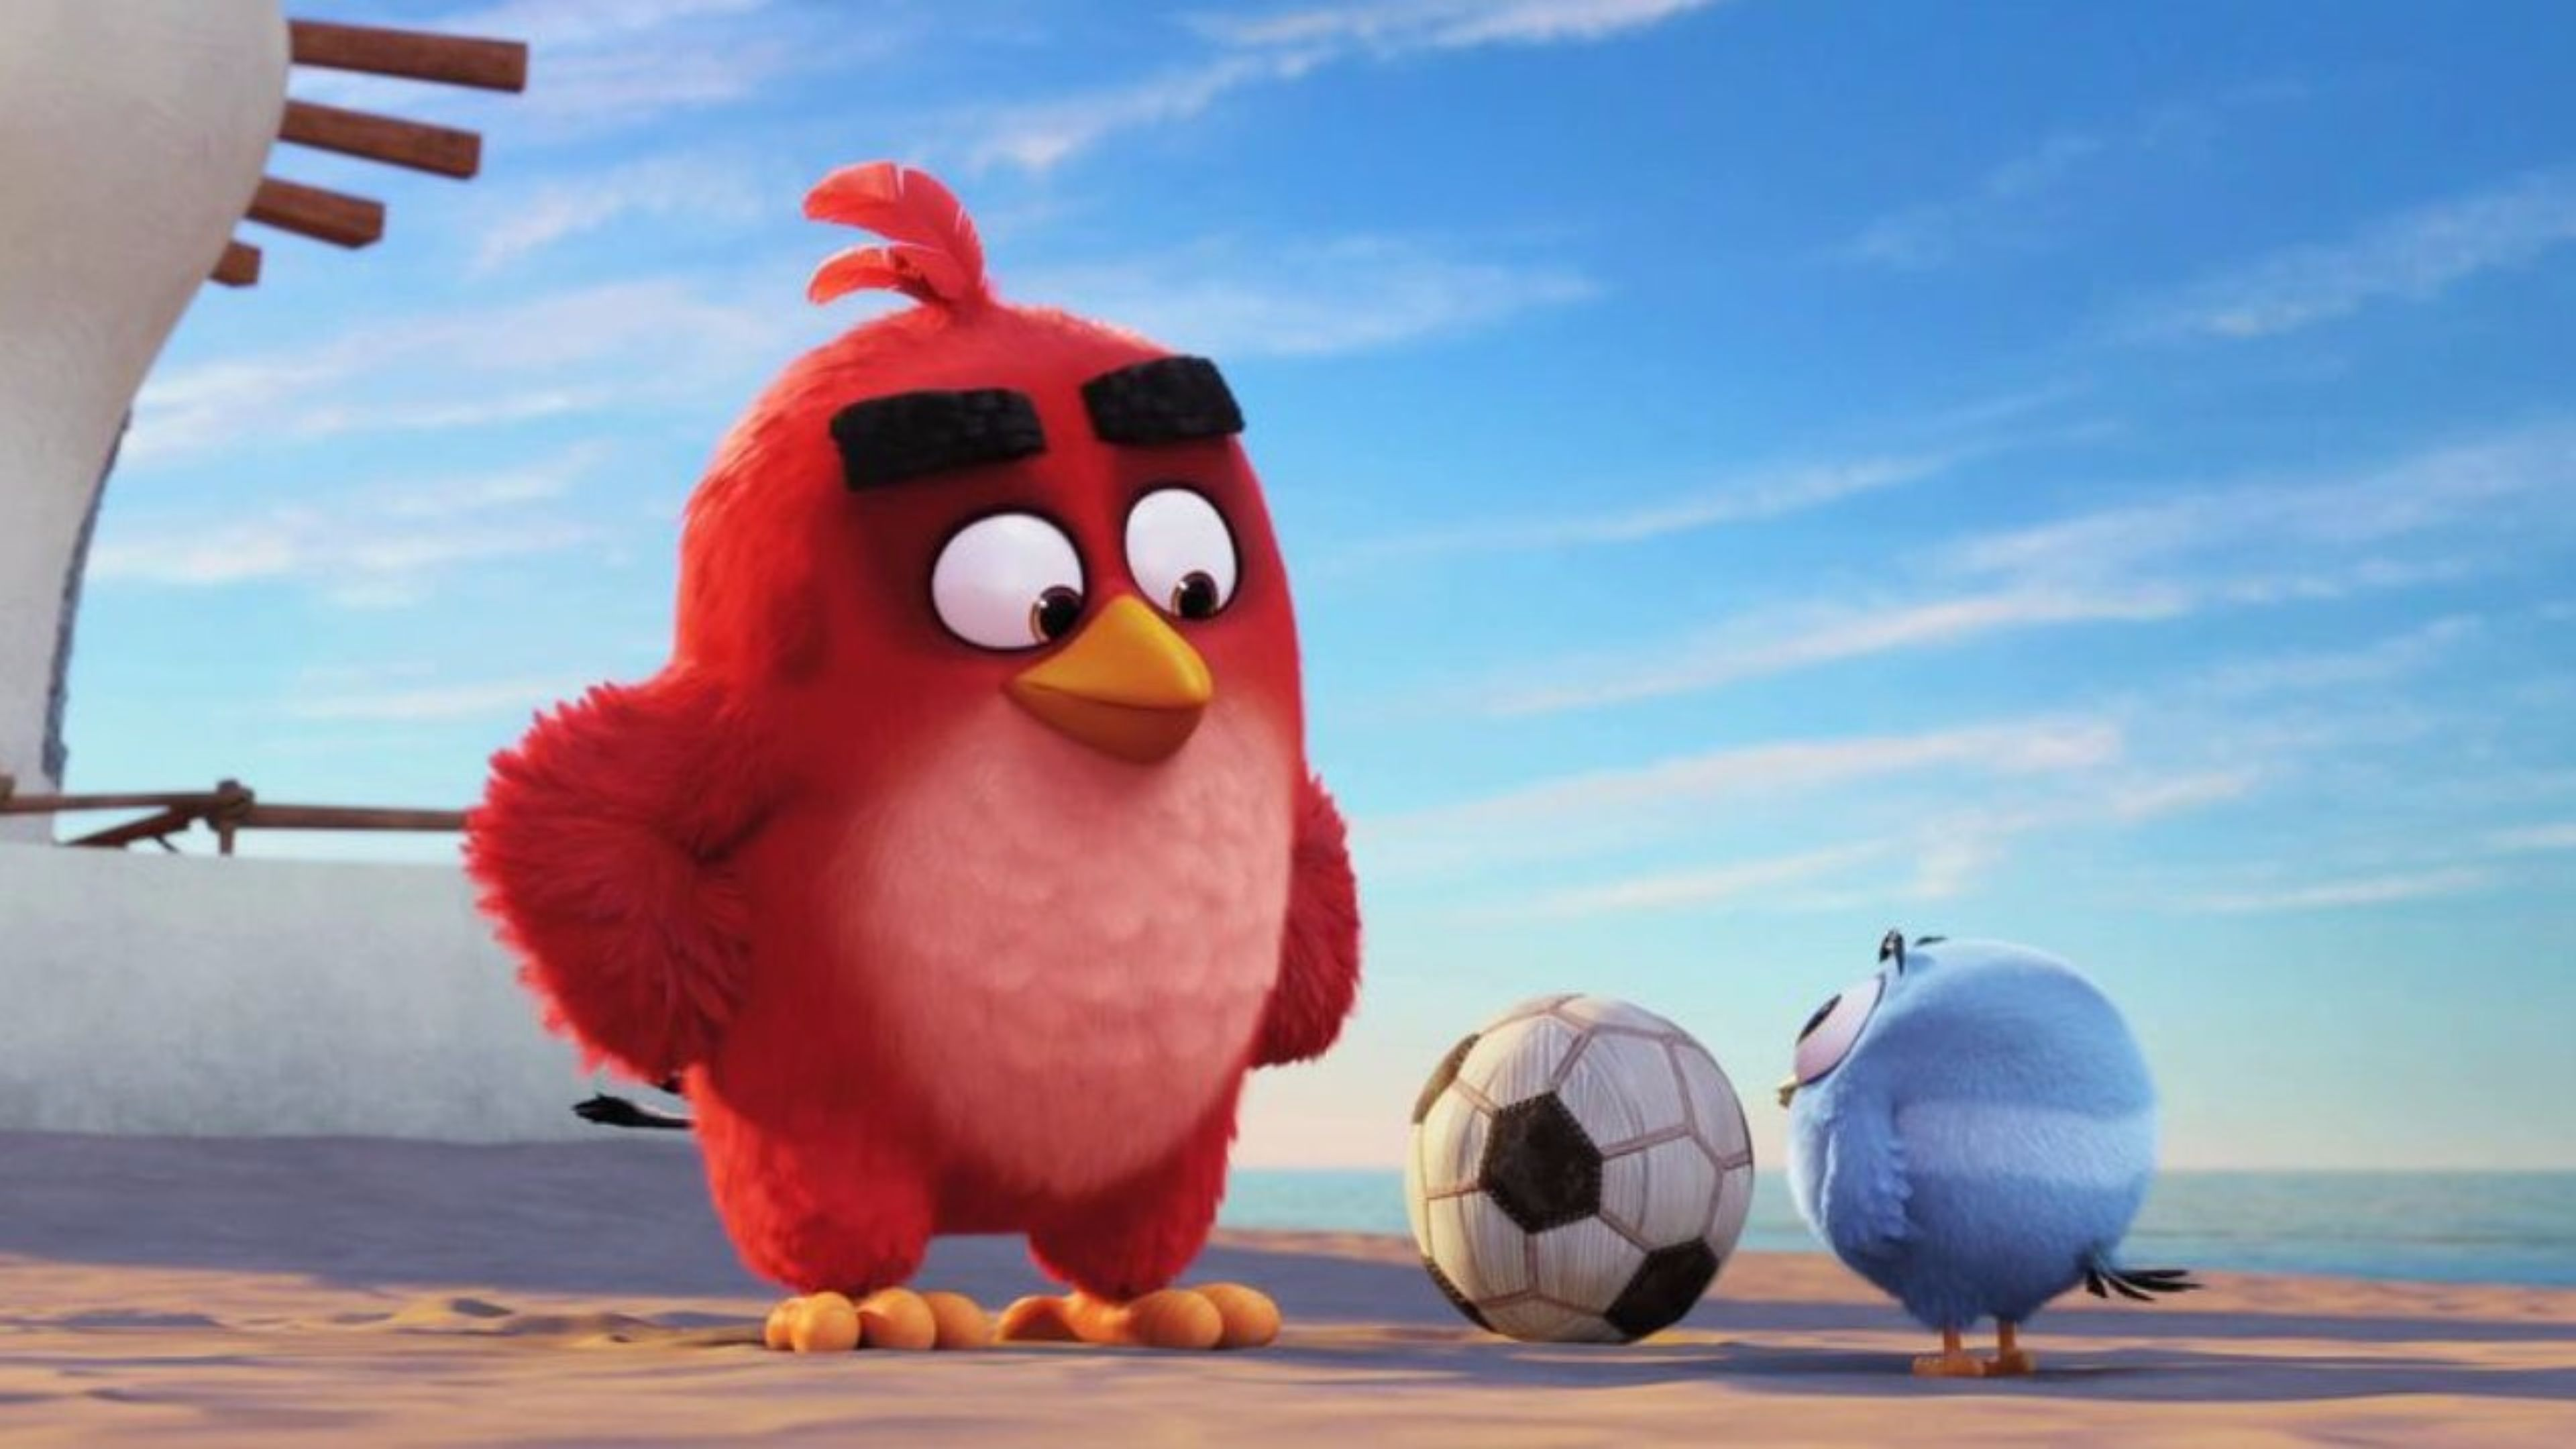 The Angry Birds Movie Hd Wallpapers 7wallpapers Net